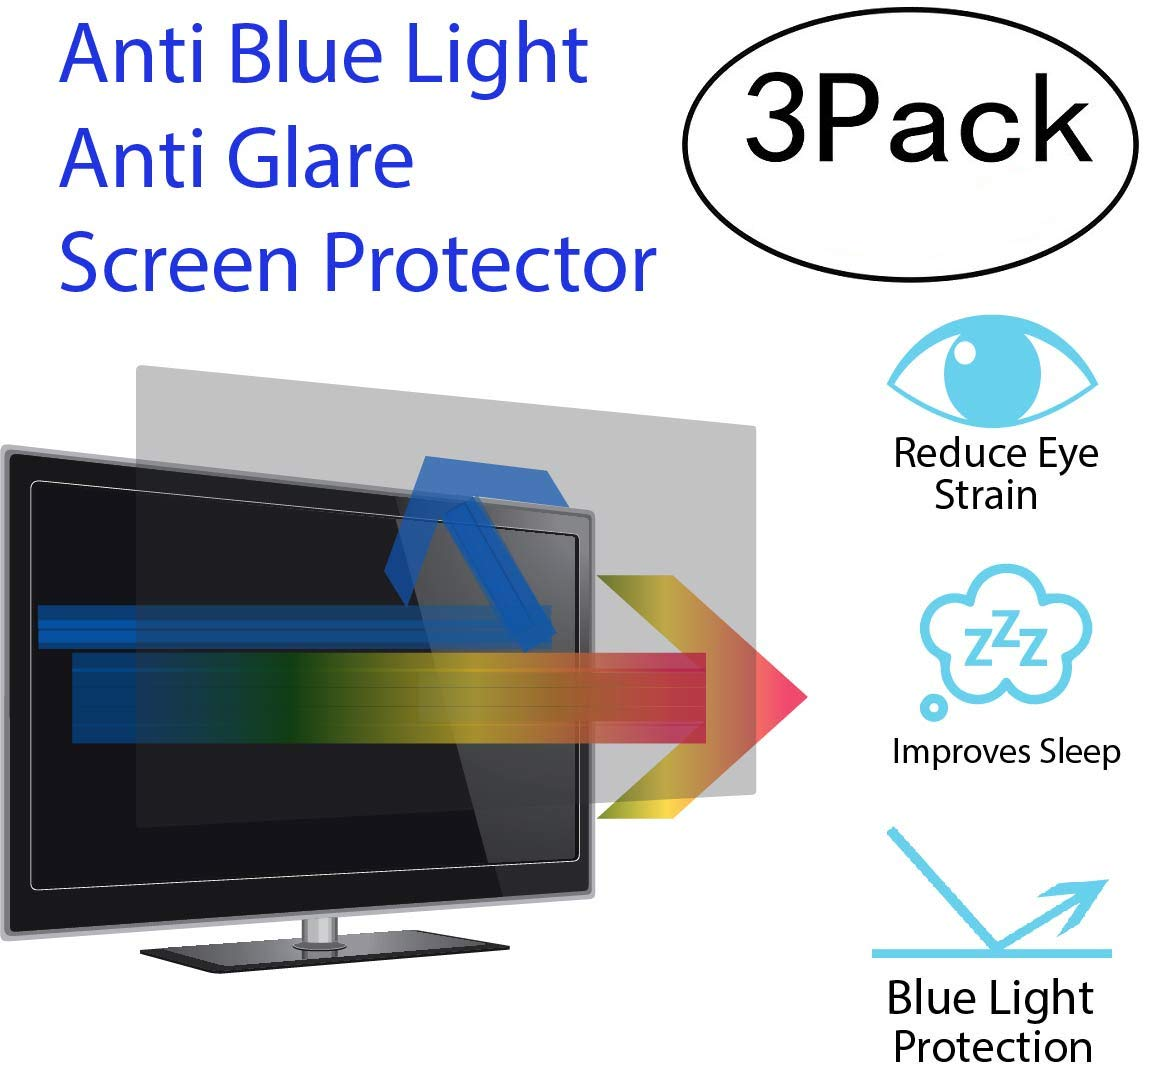 Premium Anti Blue Light and Anti Glare Screen Protector for 27 Inches Laptop with Aspect Ratio 16:09 by WS SCREEN PROTECTOR (Image #1)